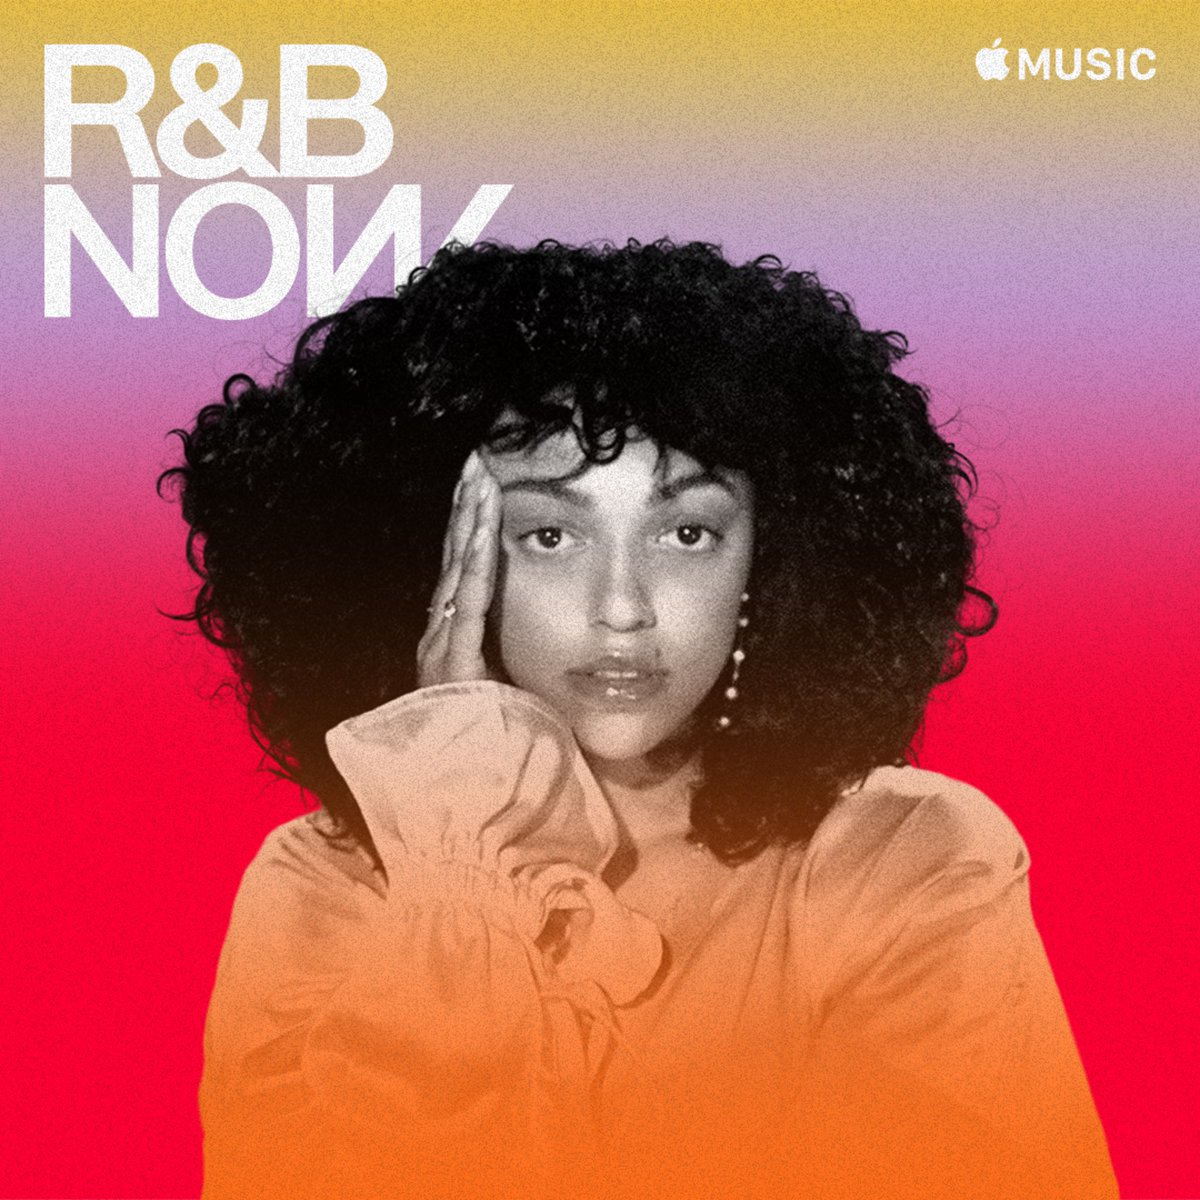 🍎 🍏 🍎 🍏 @AppleMusic https://t.co/XMkACv6m9e https://t.co/OHtb2JBUD0